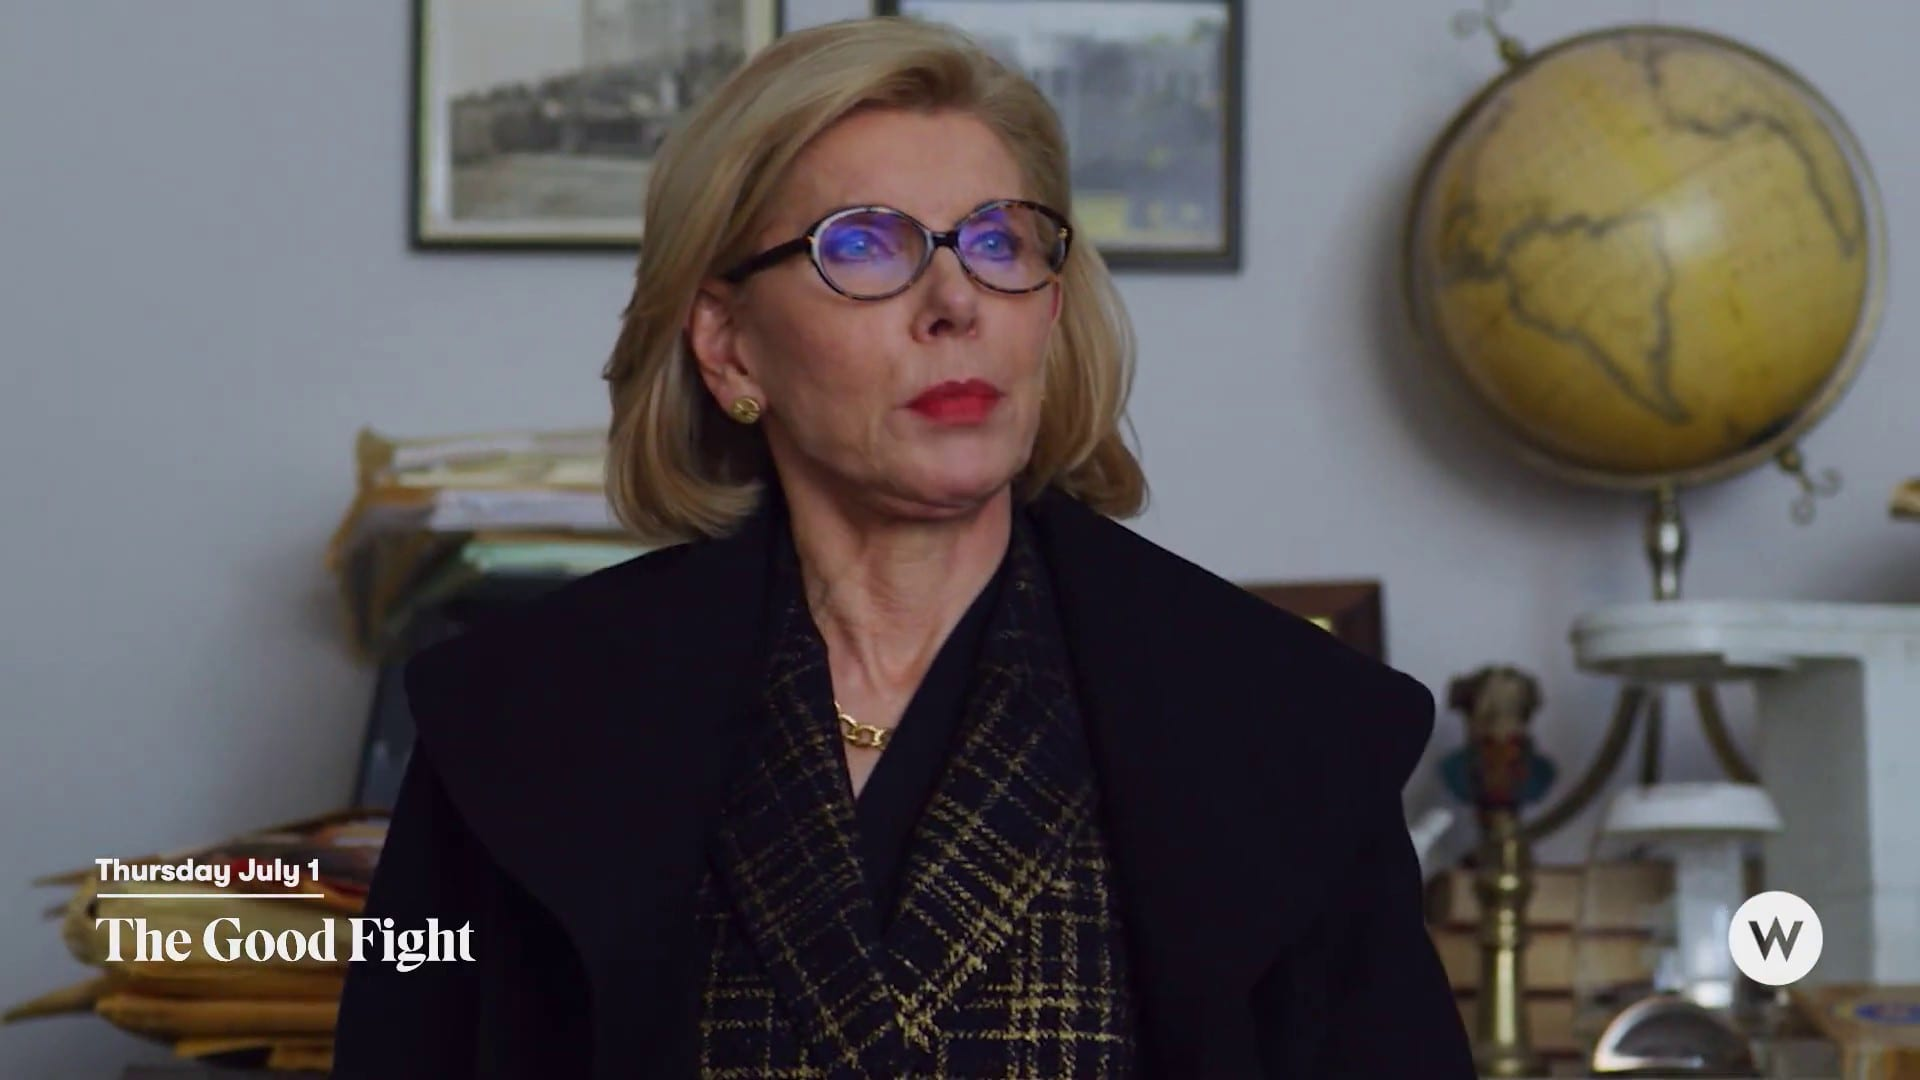 When Is THe Good Fight UK S05 Releasing In UK?